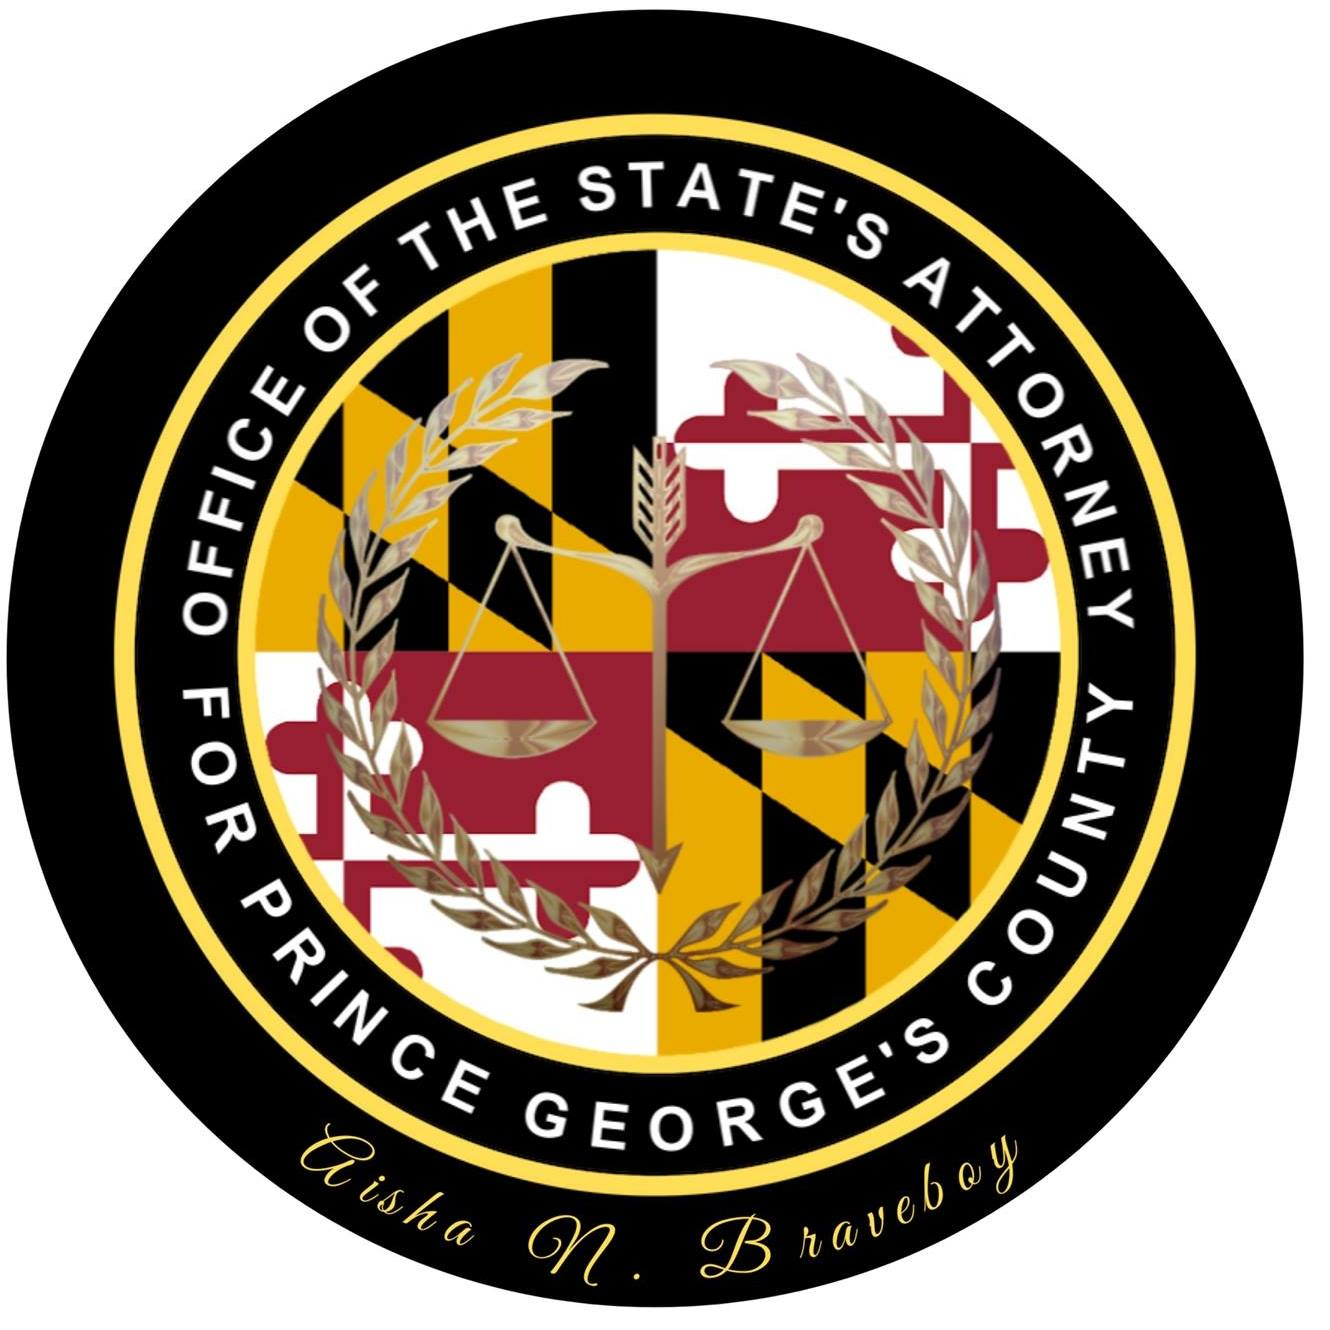 State's Attorney's Office for Prince George's County